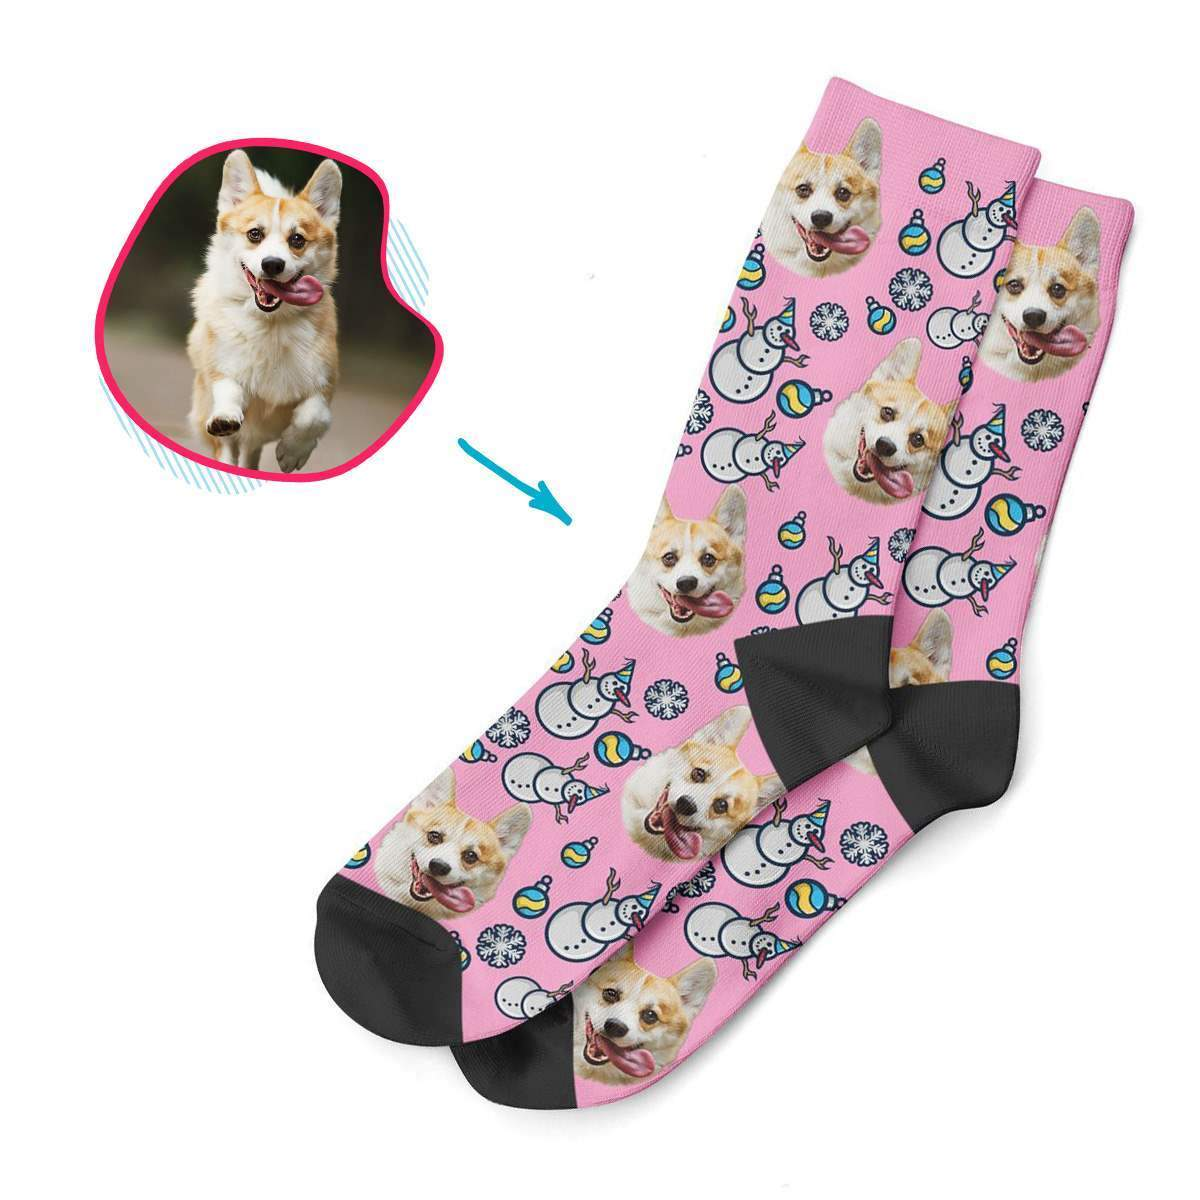 pink Snowman socks personalized with photo of face printed on them